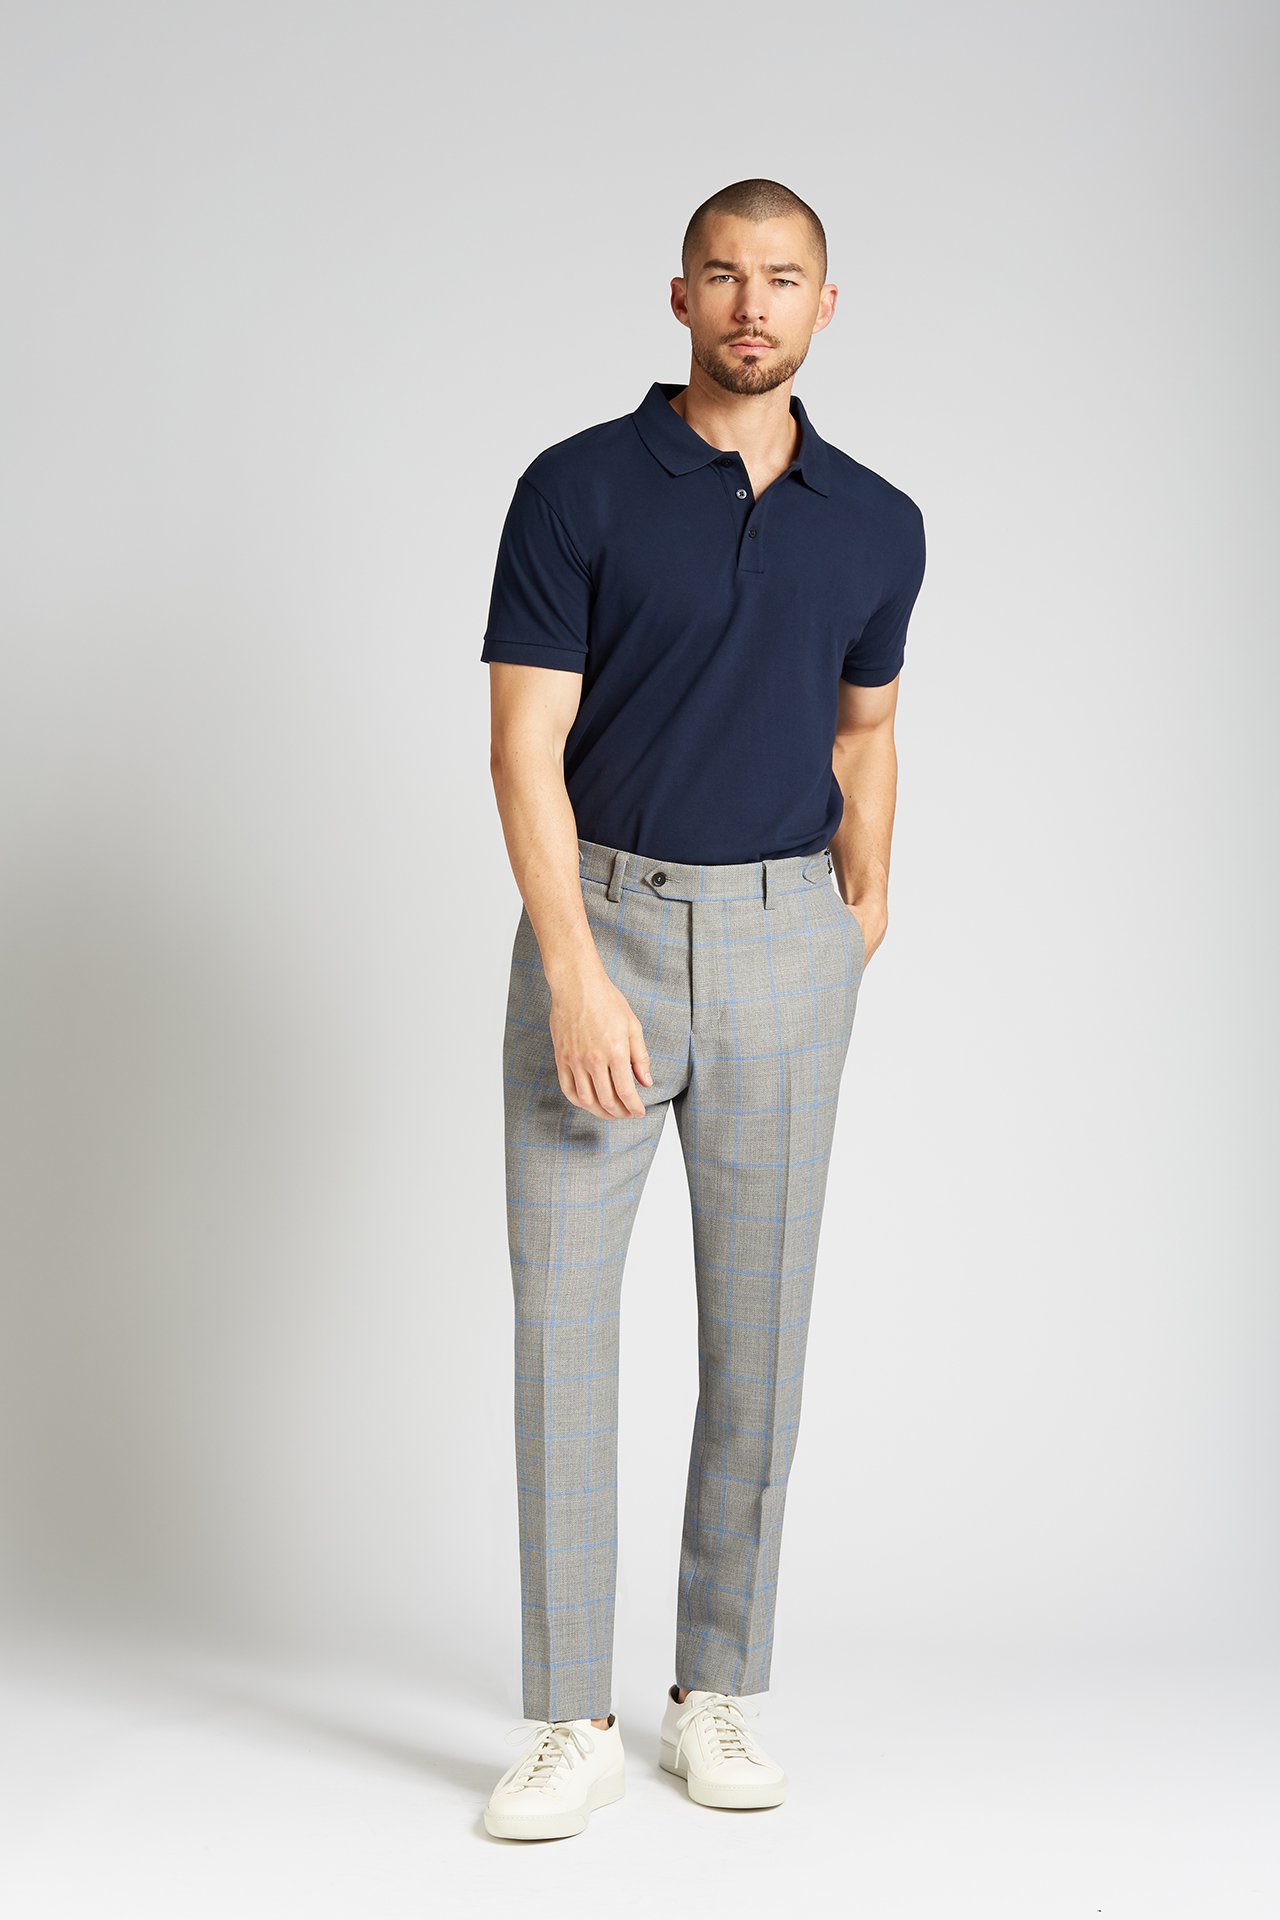 Slim-fit 4-Season Wool Trousers in Grey with French Blue Windowpane